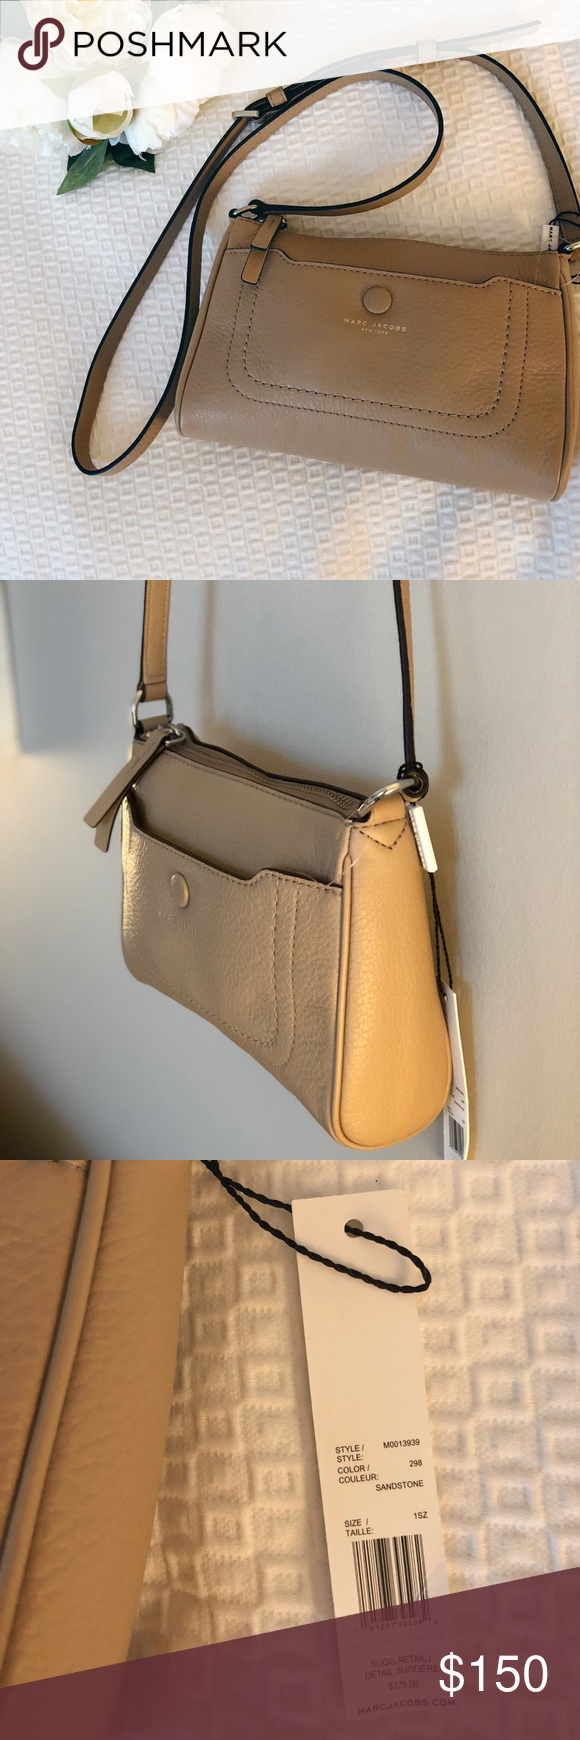 66ccf1f08a11 NWT Marc Jacobs cross body bag Beautiful bag and perfect for fall. Nice  neutral color